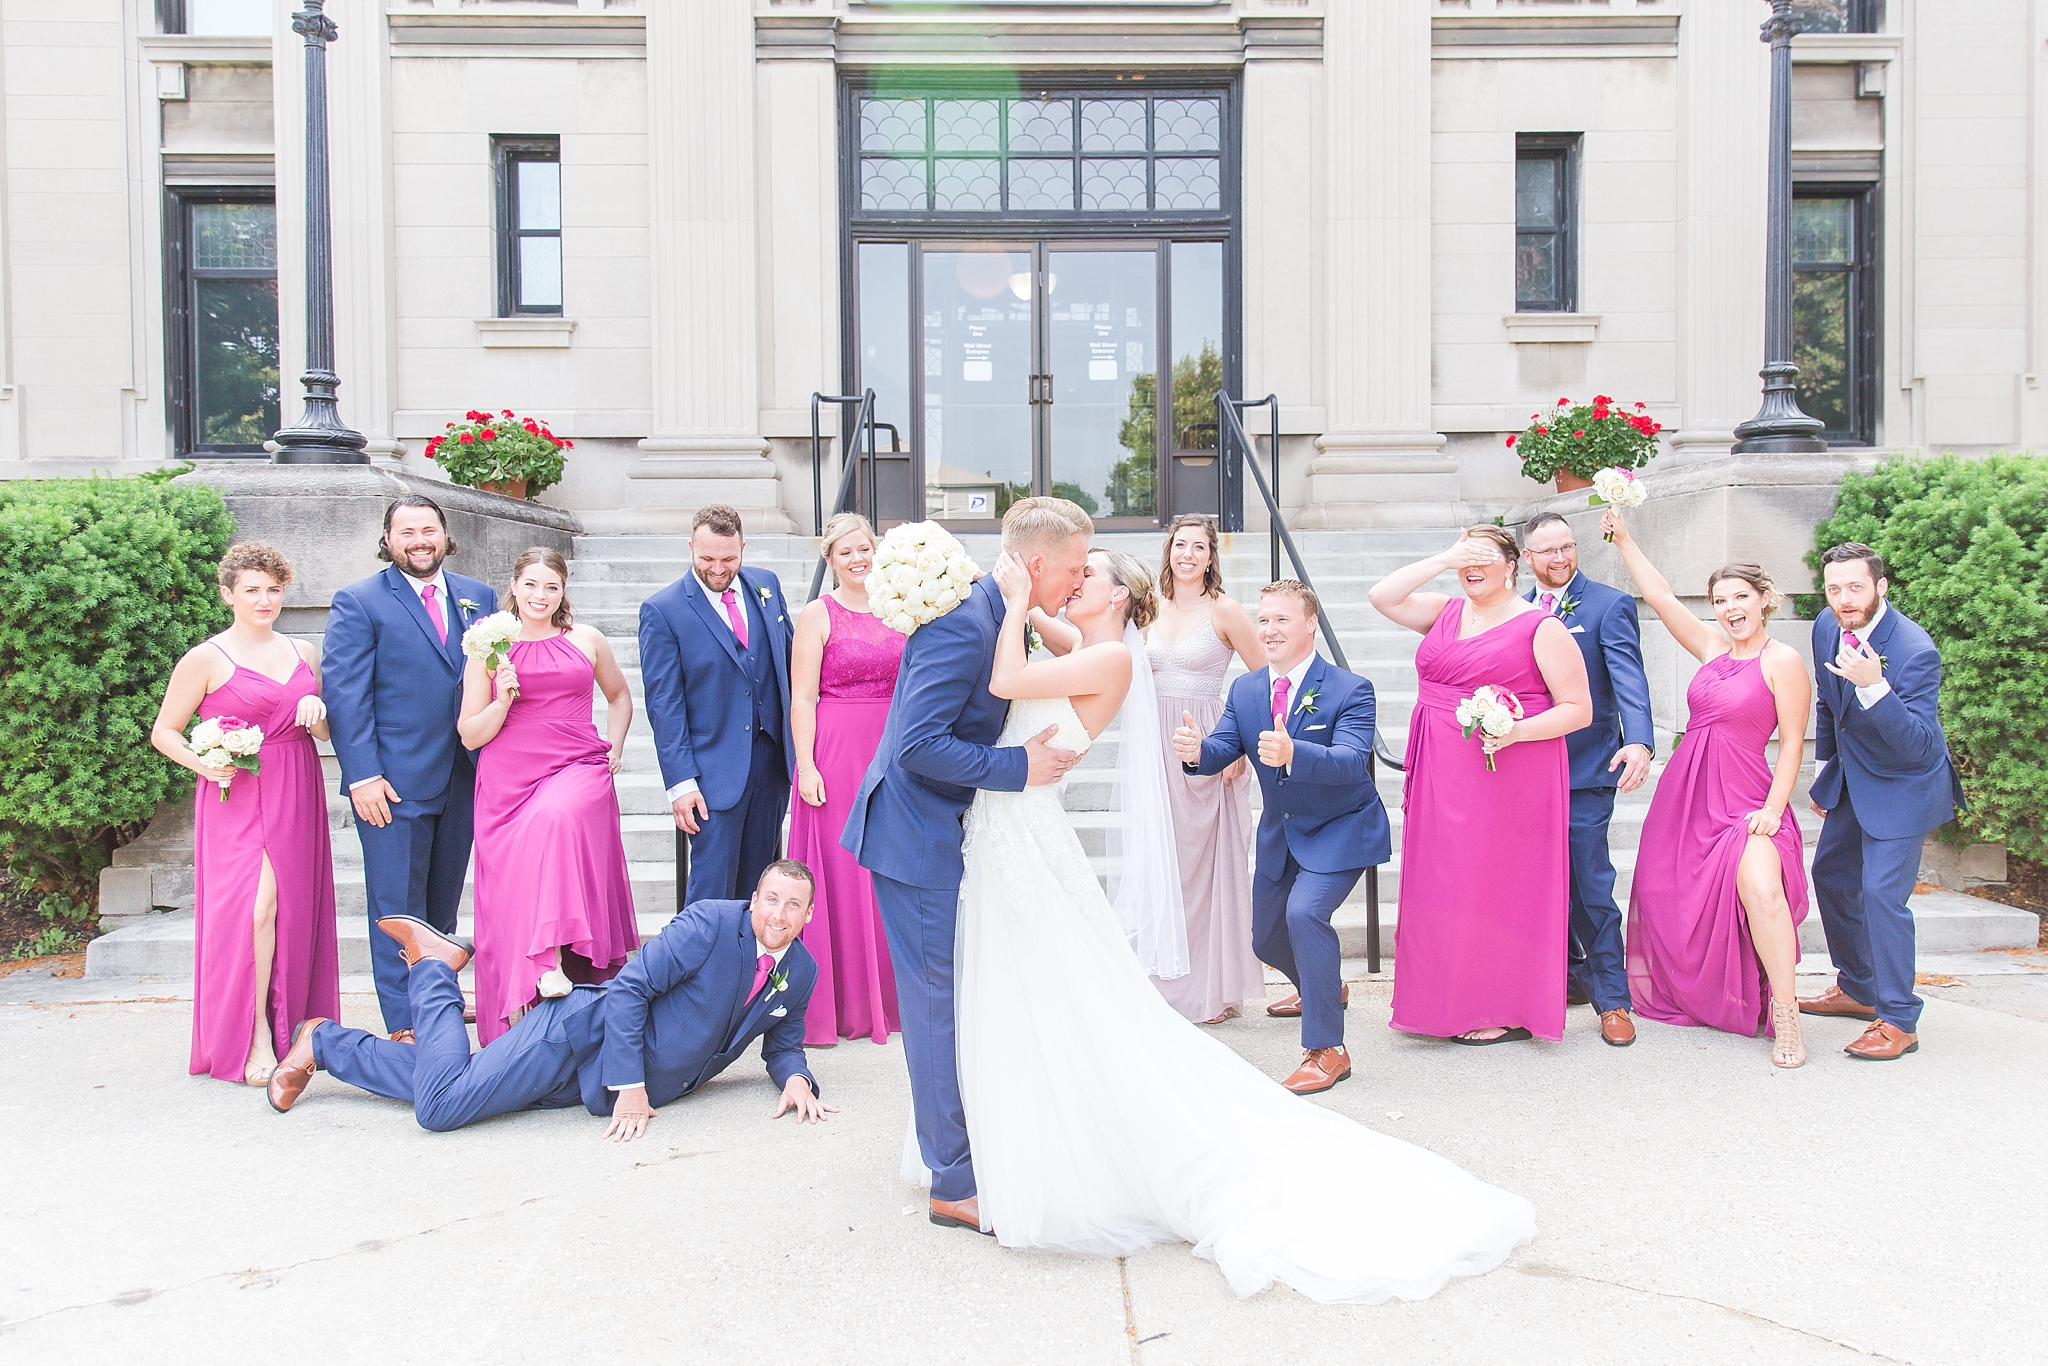 fun-nautical-wedding-photos-at-the-bean-dock-in-downtown-port-huron-michigan-by-courtney-carolyn-photography_0045.jpg